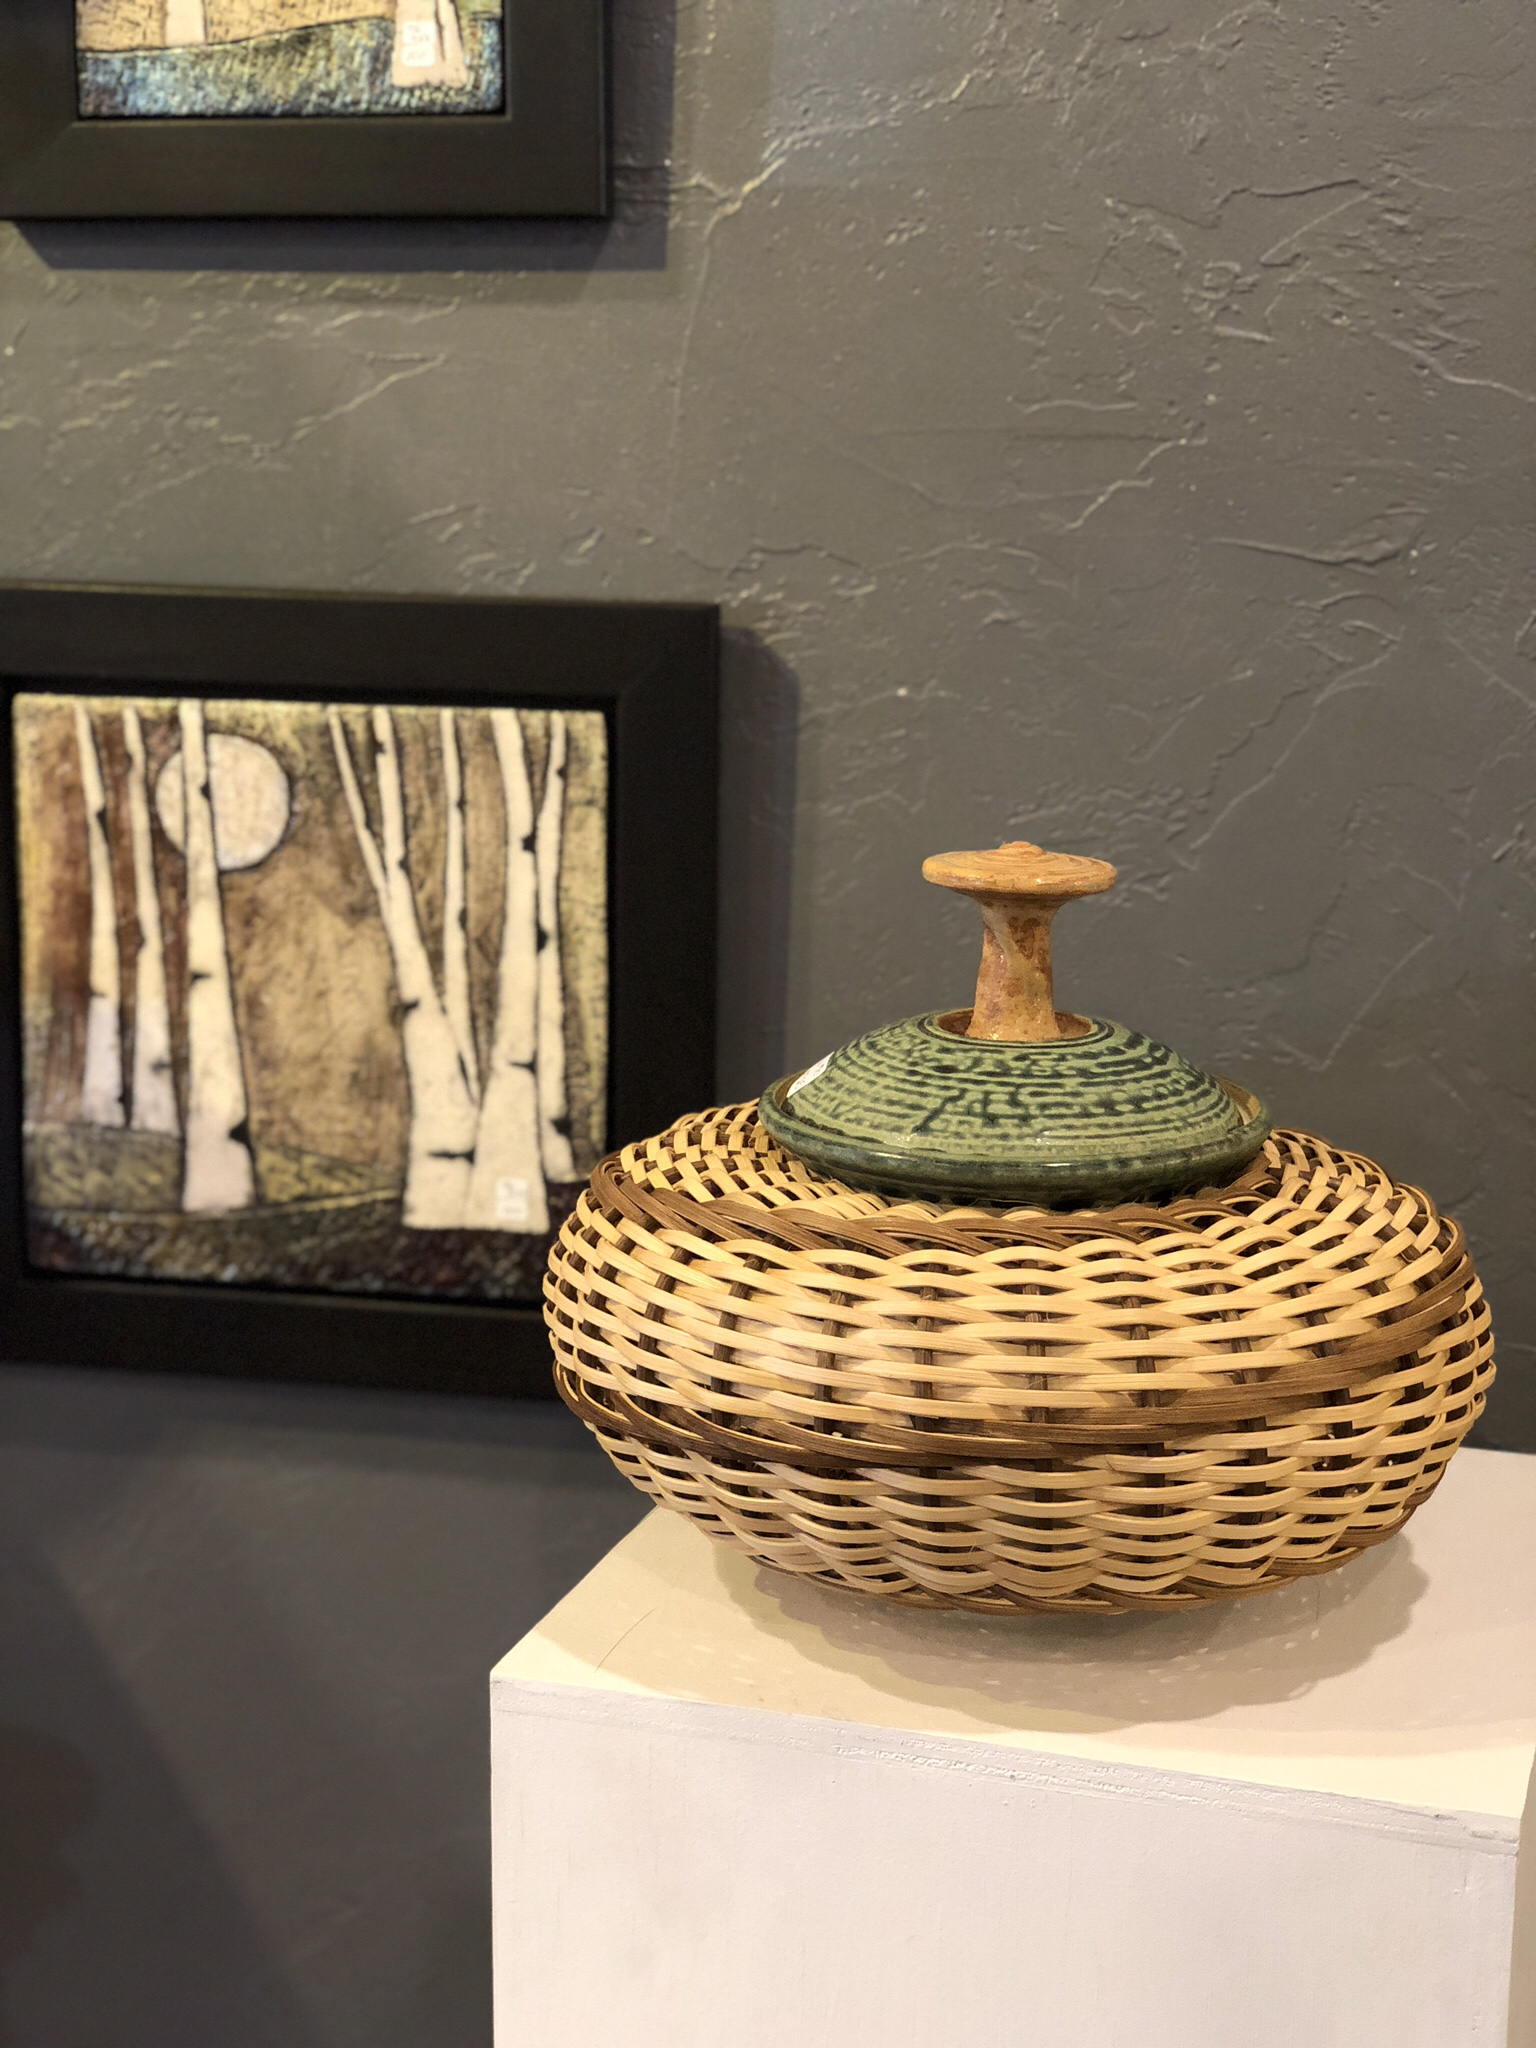 Raku wall hanging by Tonya Rund. Ceramic and Basket vessel by Stephen Kostyshyn